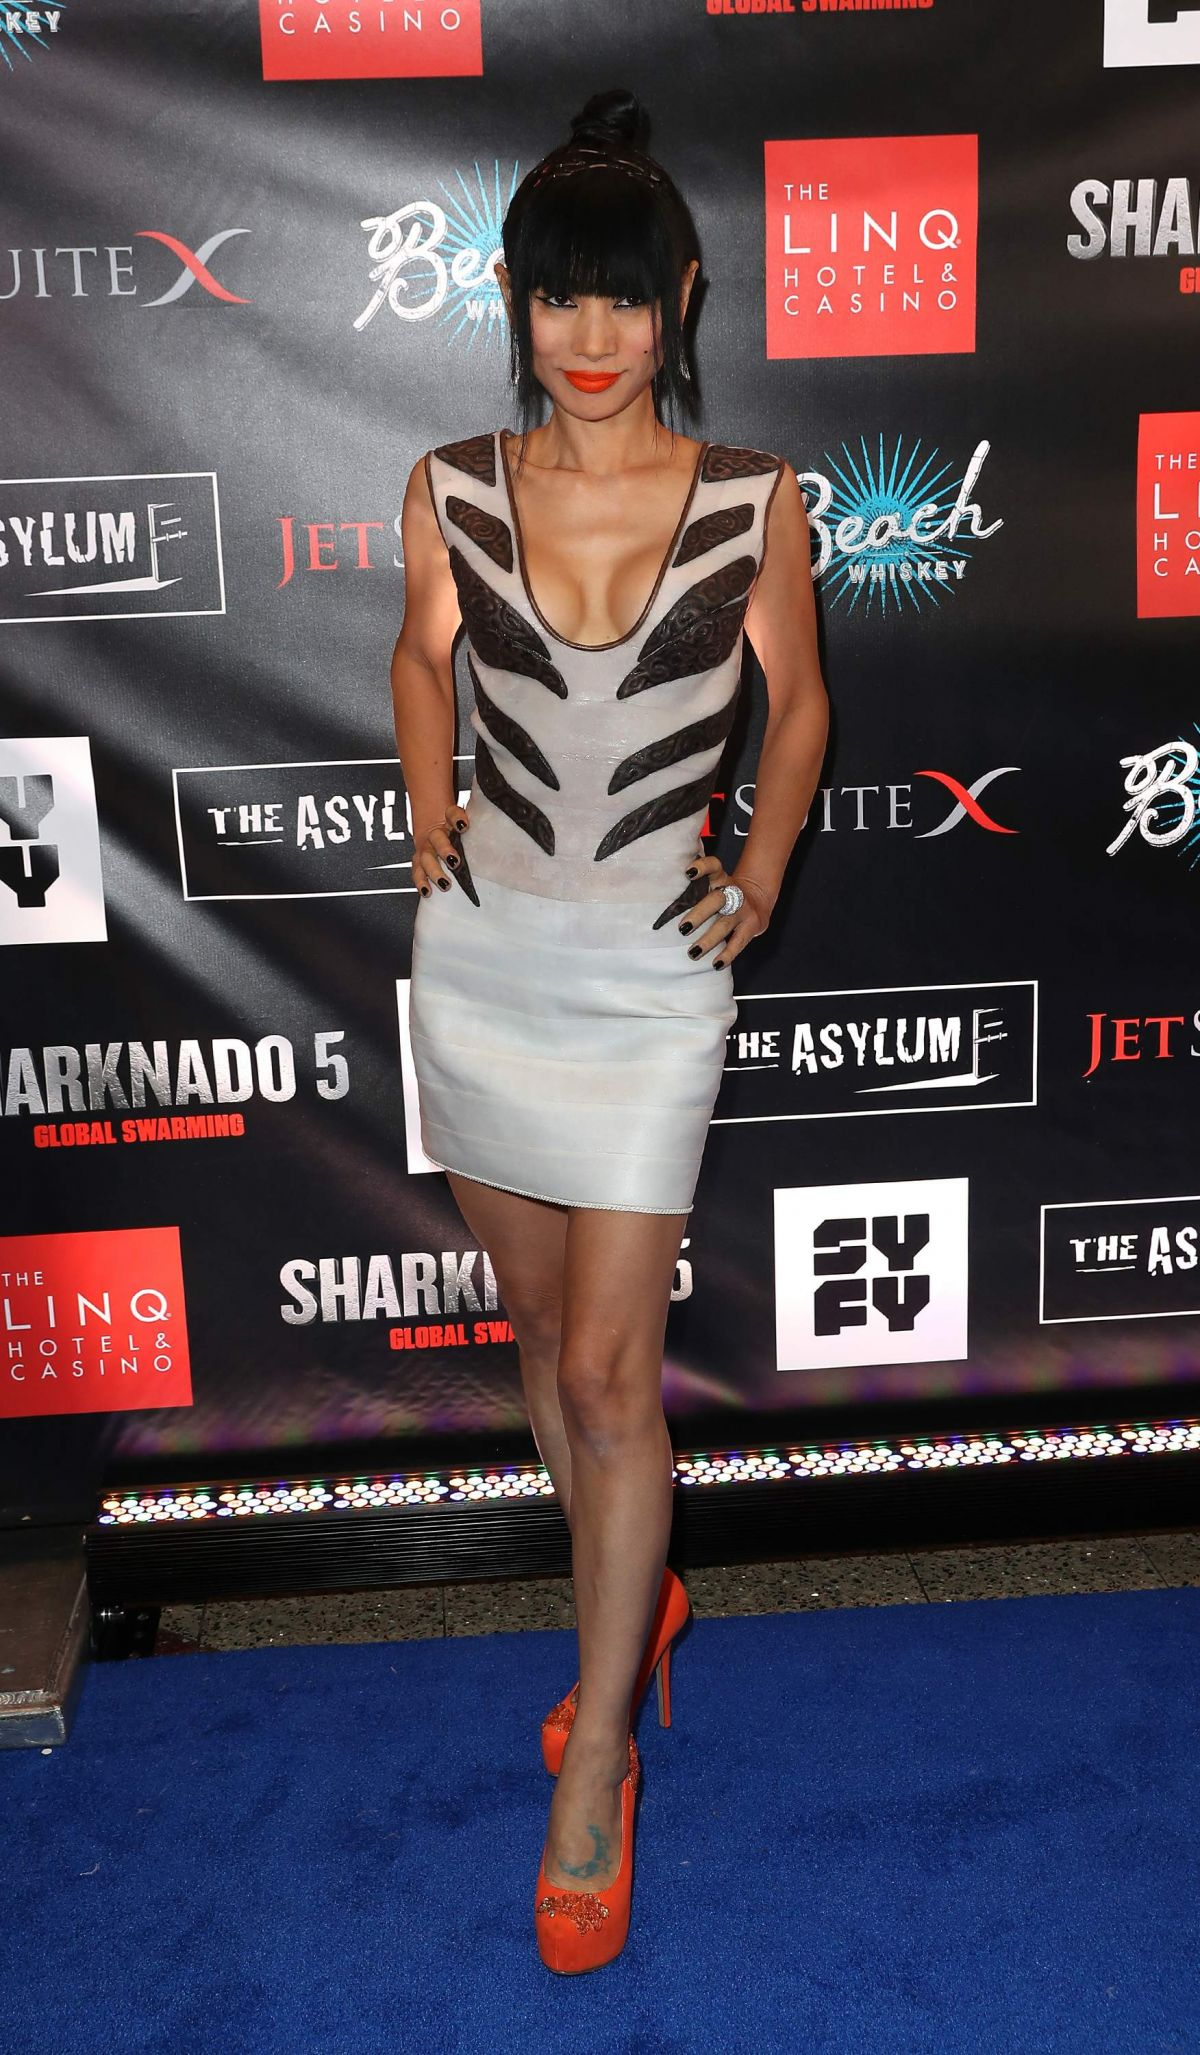 Bai Ling Attends The Sharknado 5 Premiere At The LINQ